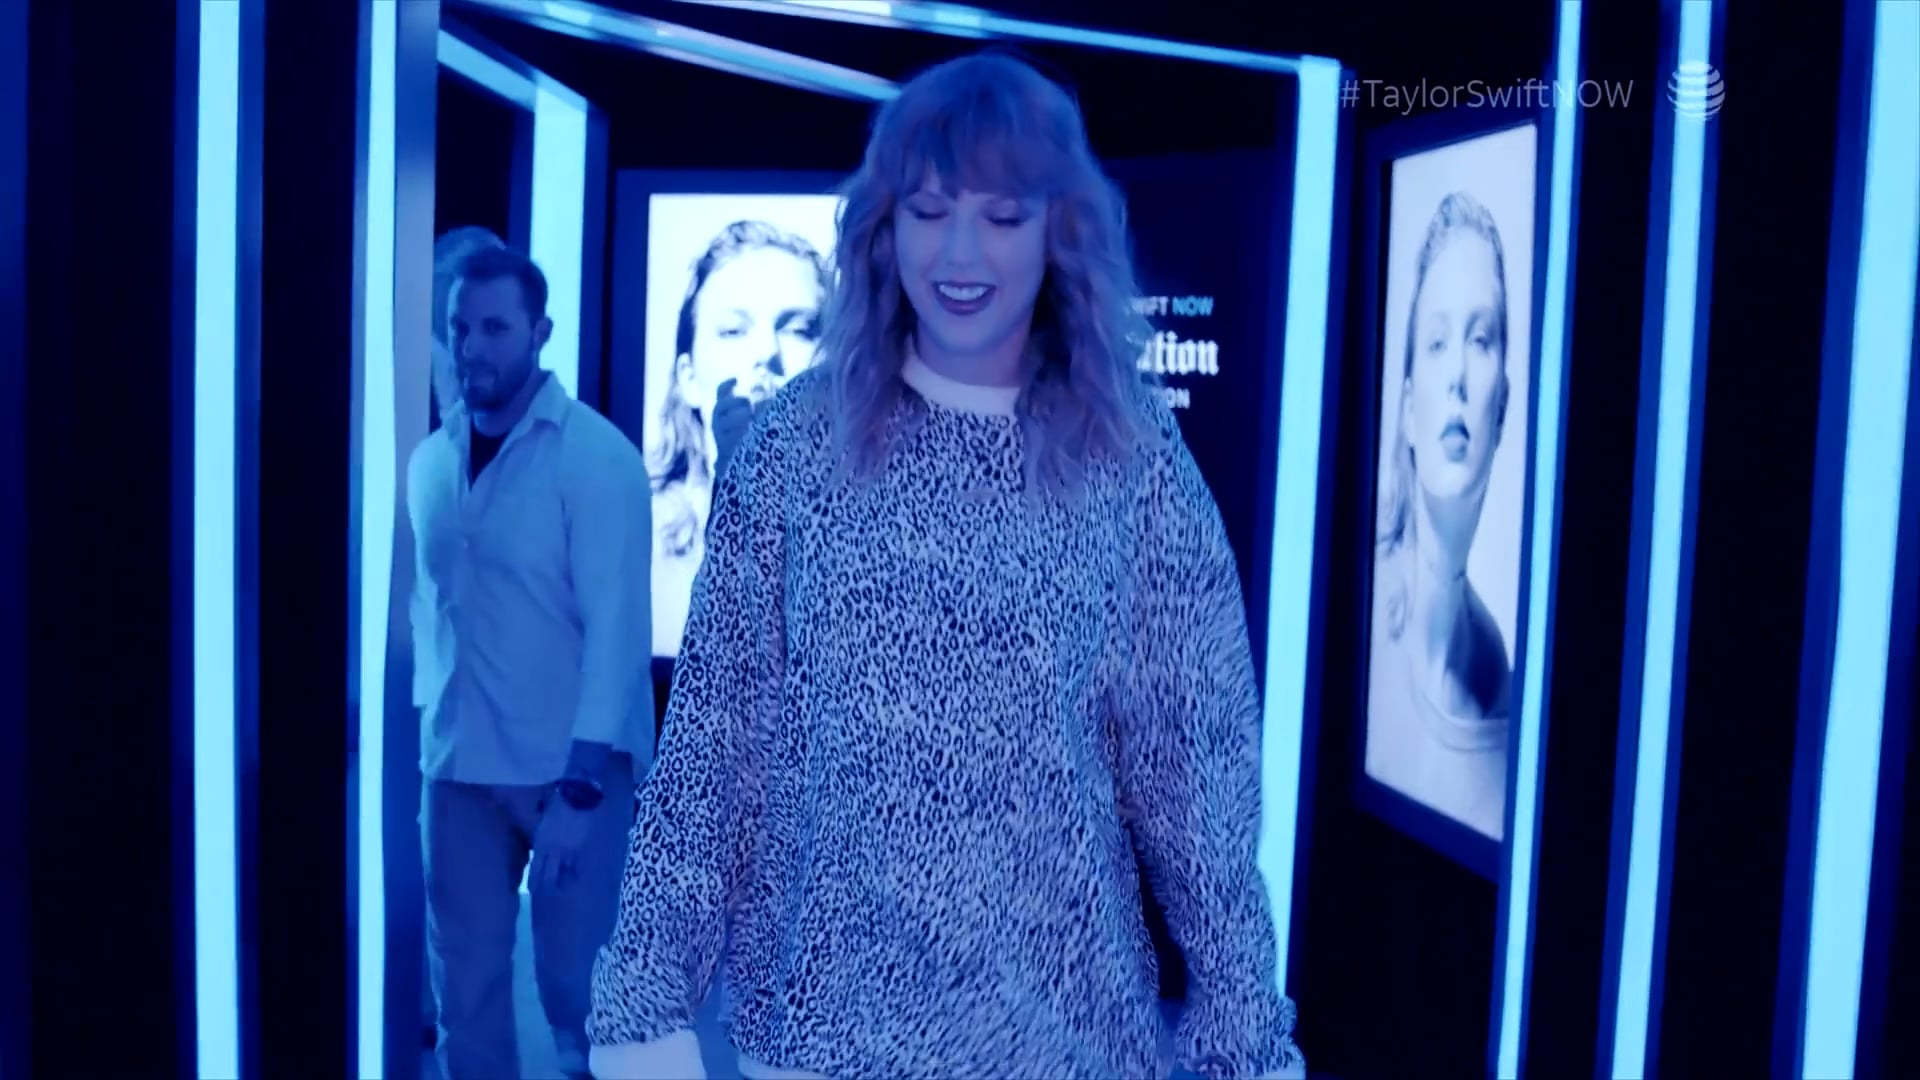 Taylor Swift Now    The Making of a Song NYC Take Over